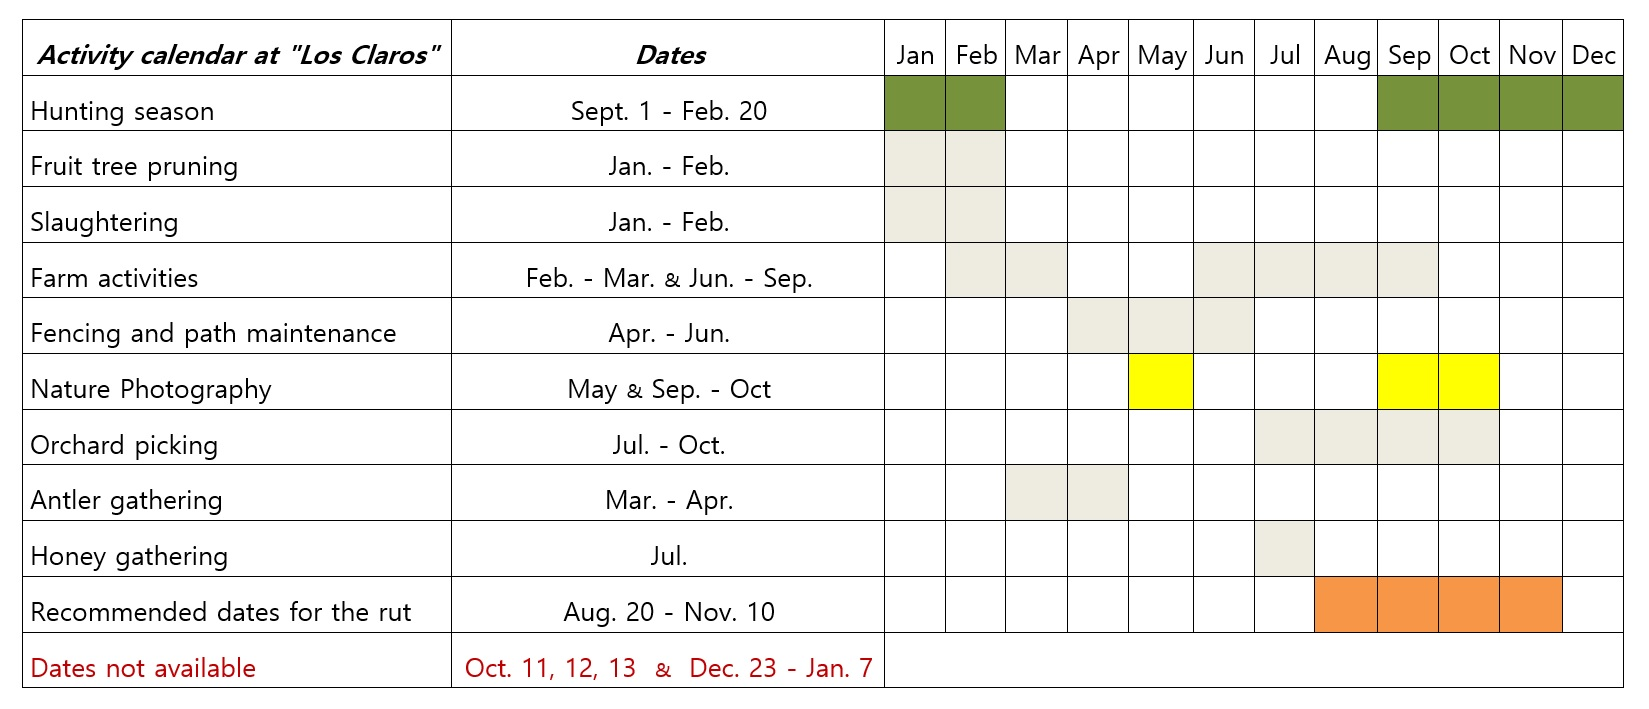 Activity calendar at Los Claros